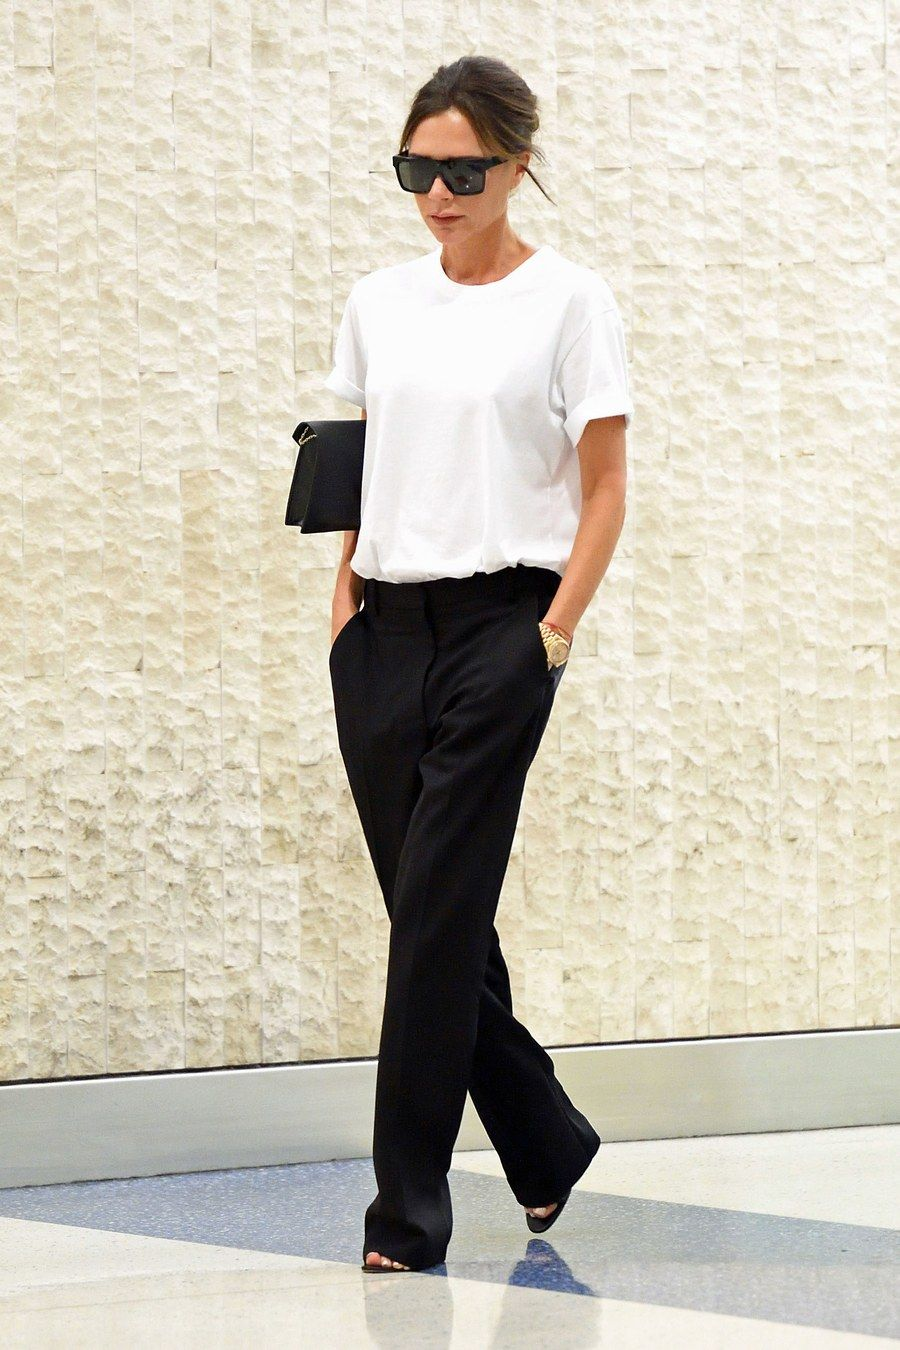 Victoria Beckham's Airport Style Ahead of Her Spring 2018 Show